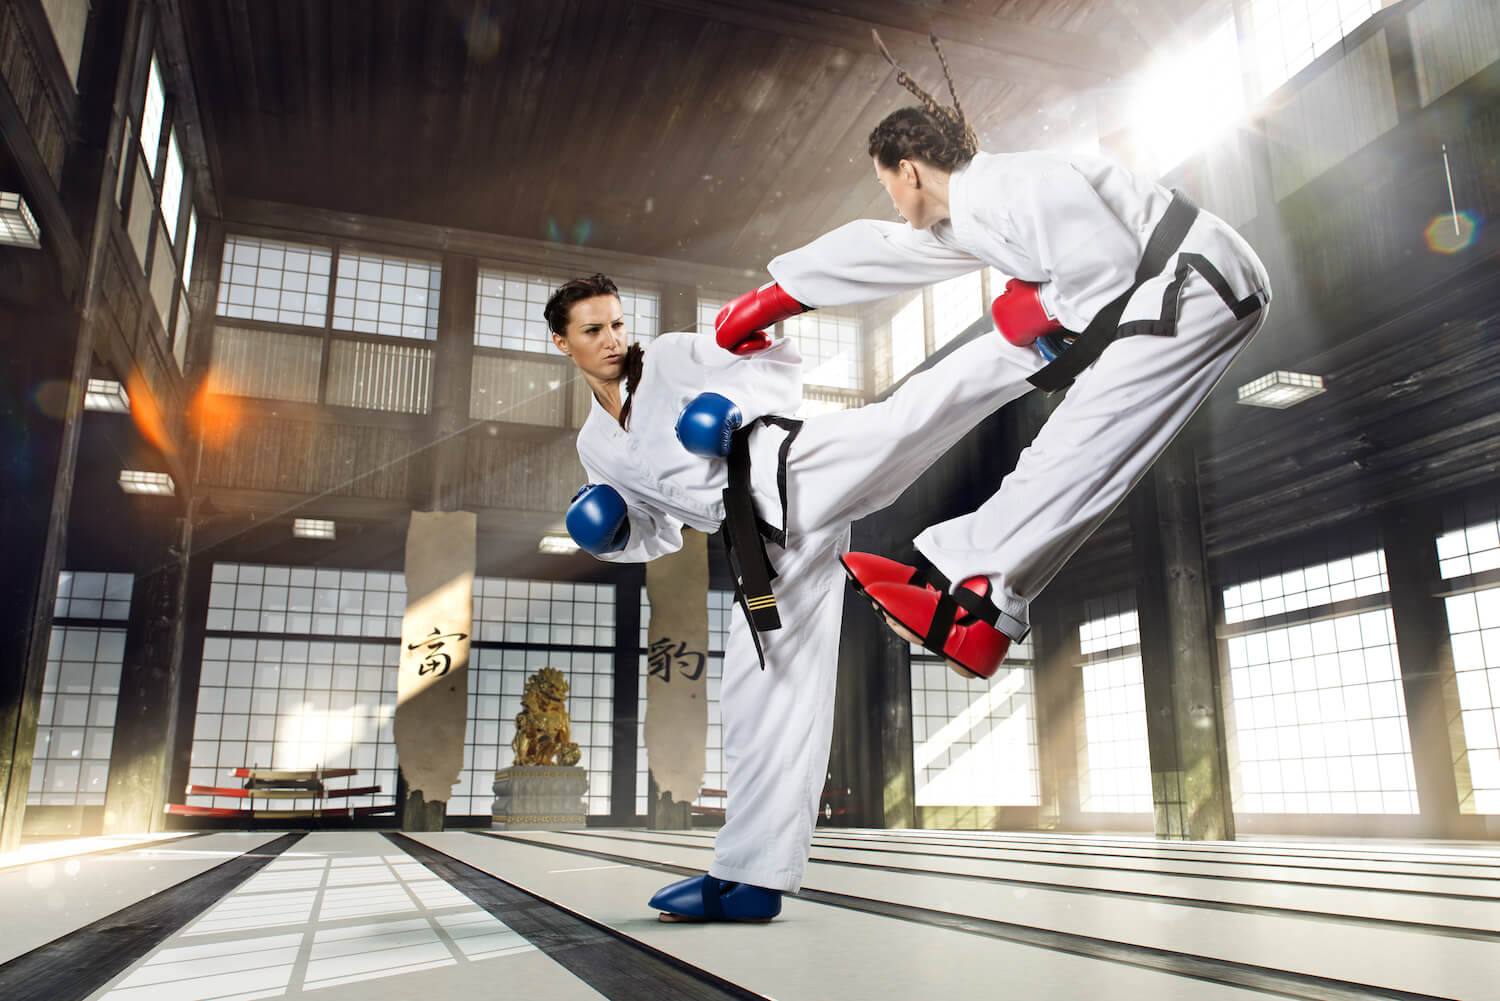 karate combat martial arts